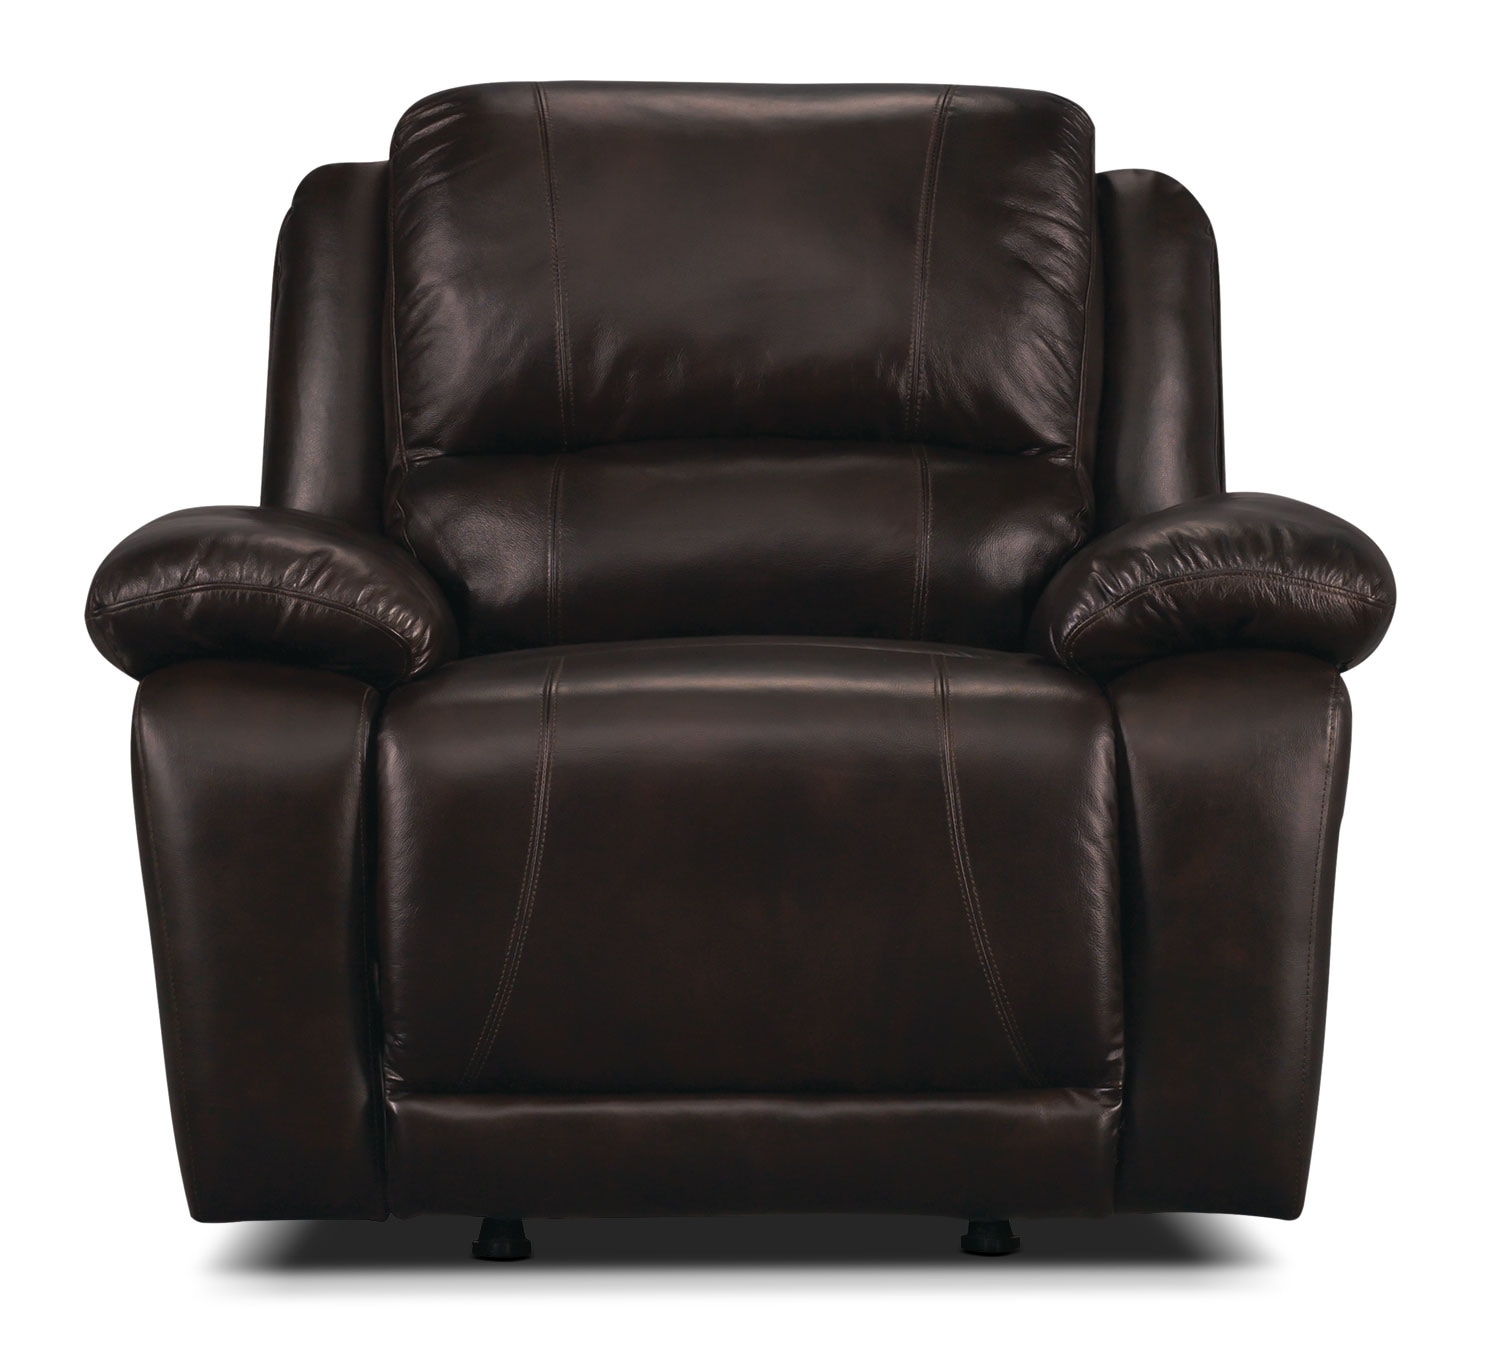 genuine leather chair 24 hour office chairs marco rocker reclining chocolate